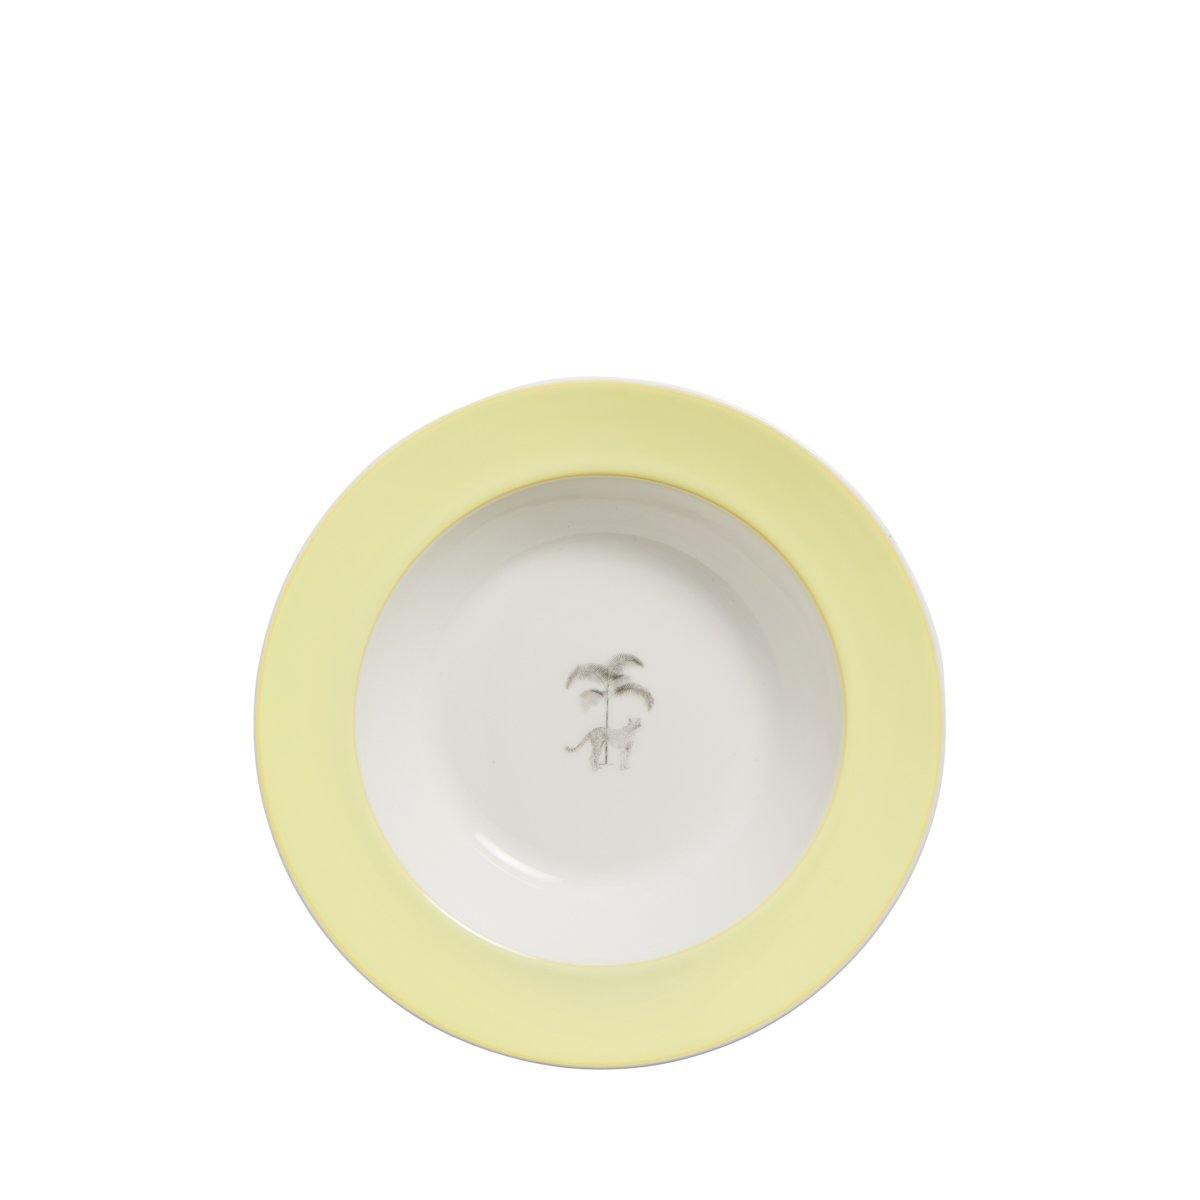 Harlequin Bone China Soup Bowls - Set of 4 - club matters